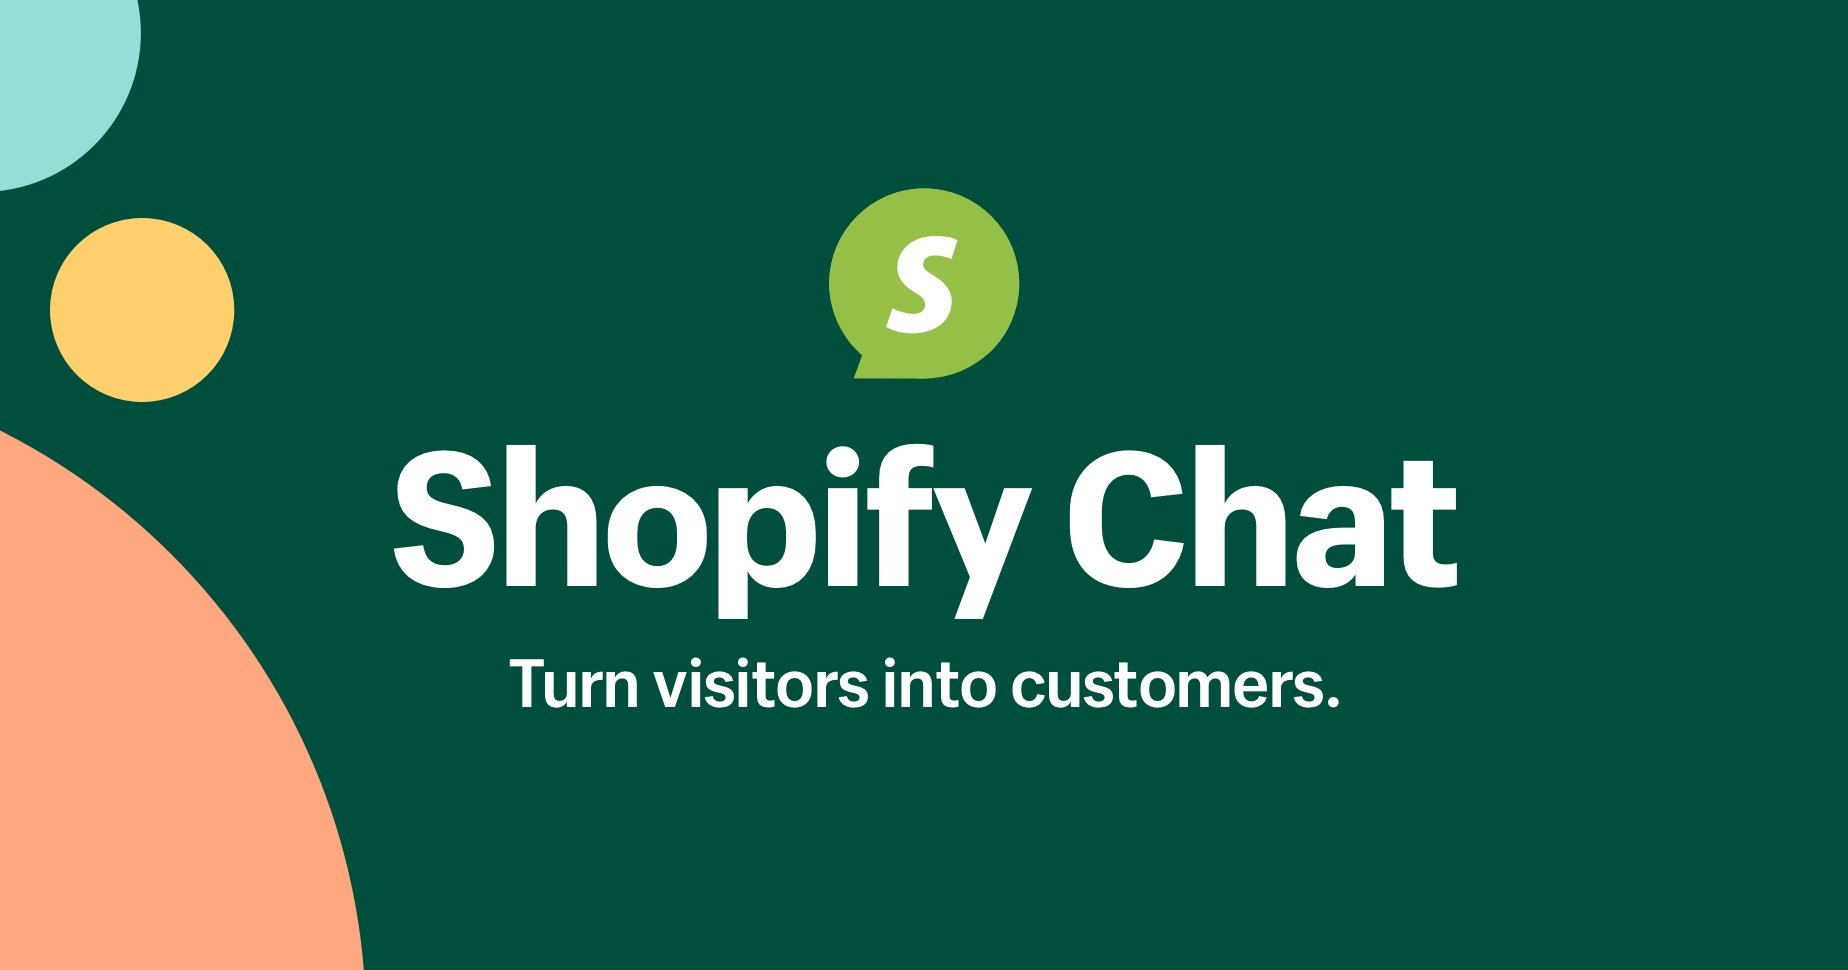 Shopify launches Shopify Chat